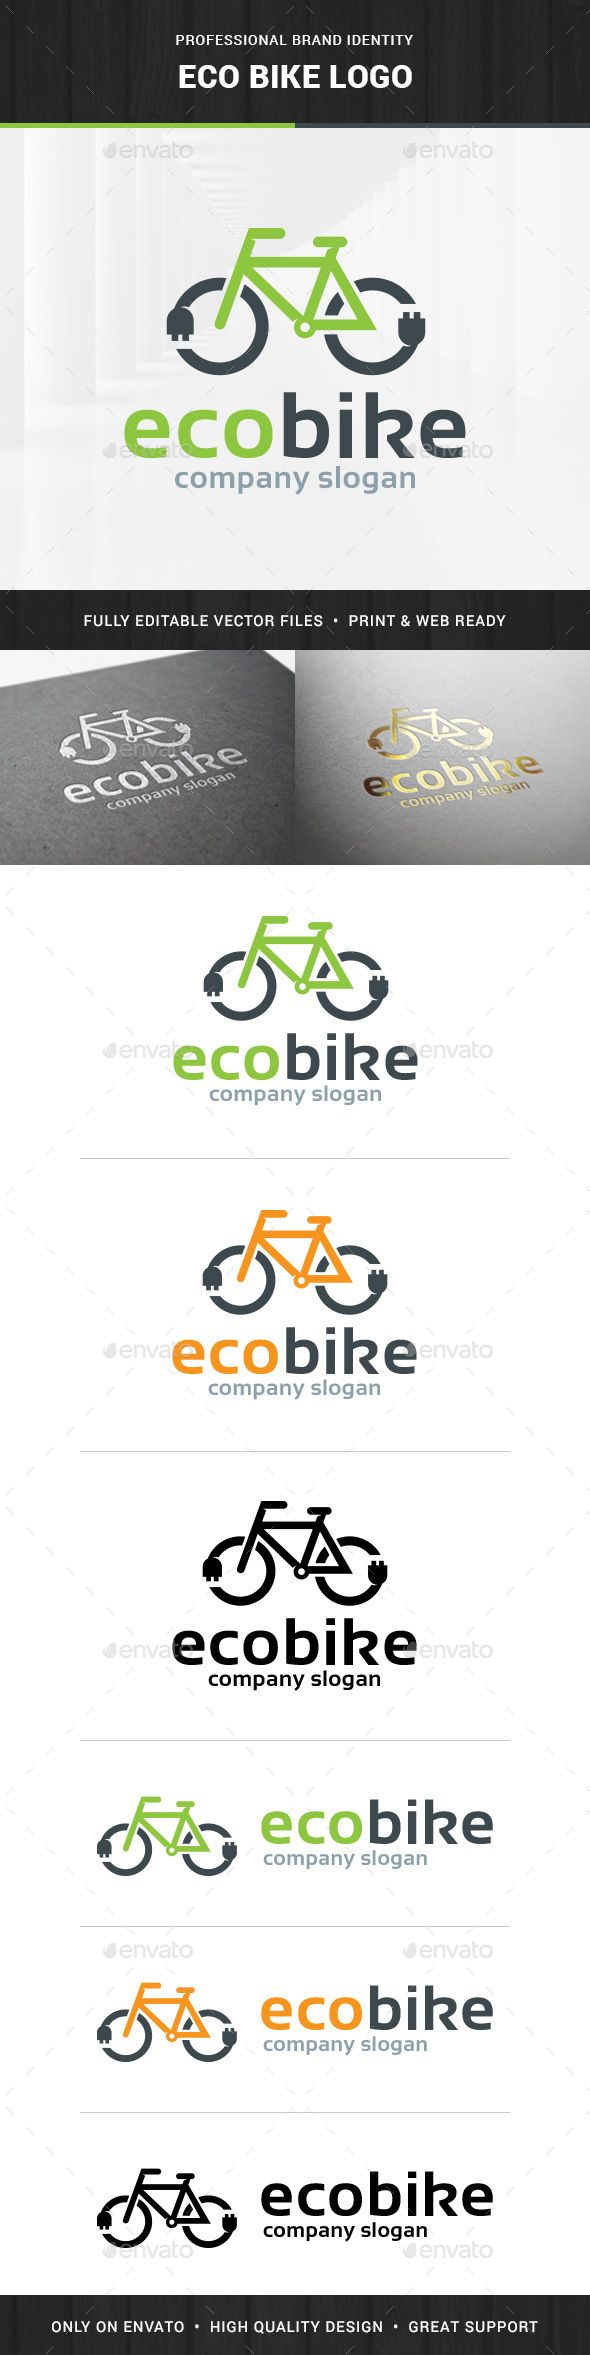 Bike stickers design discover - Eco Bike Logo Design Template Vector Logotype Download It Here Http